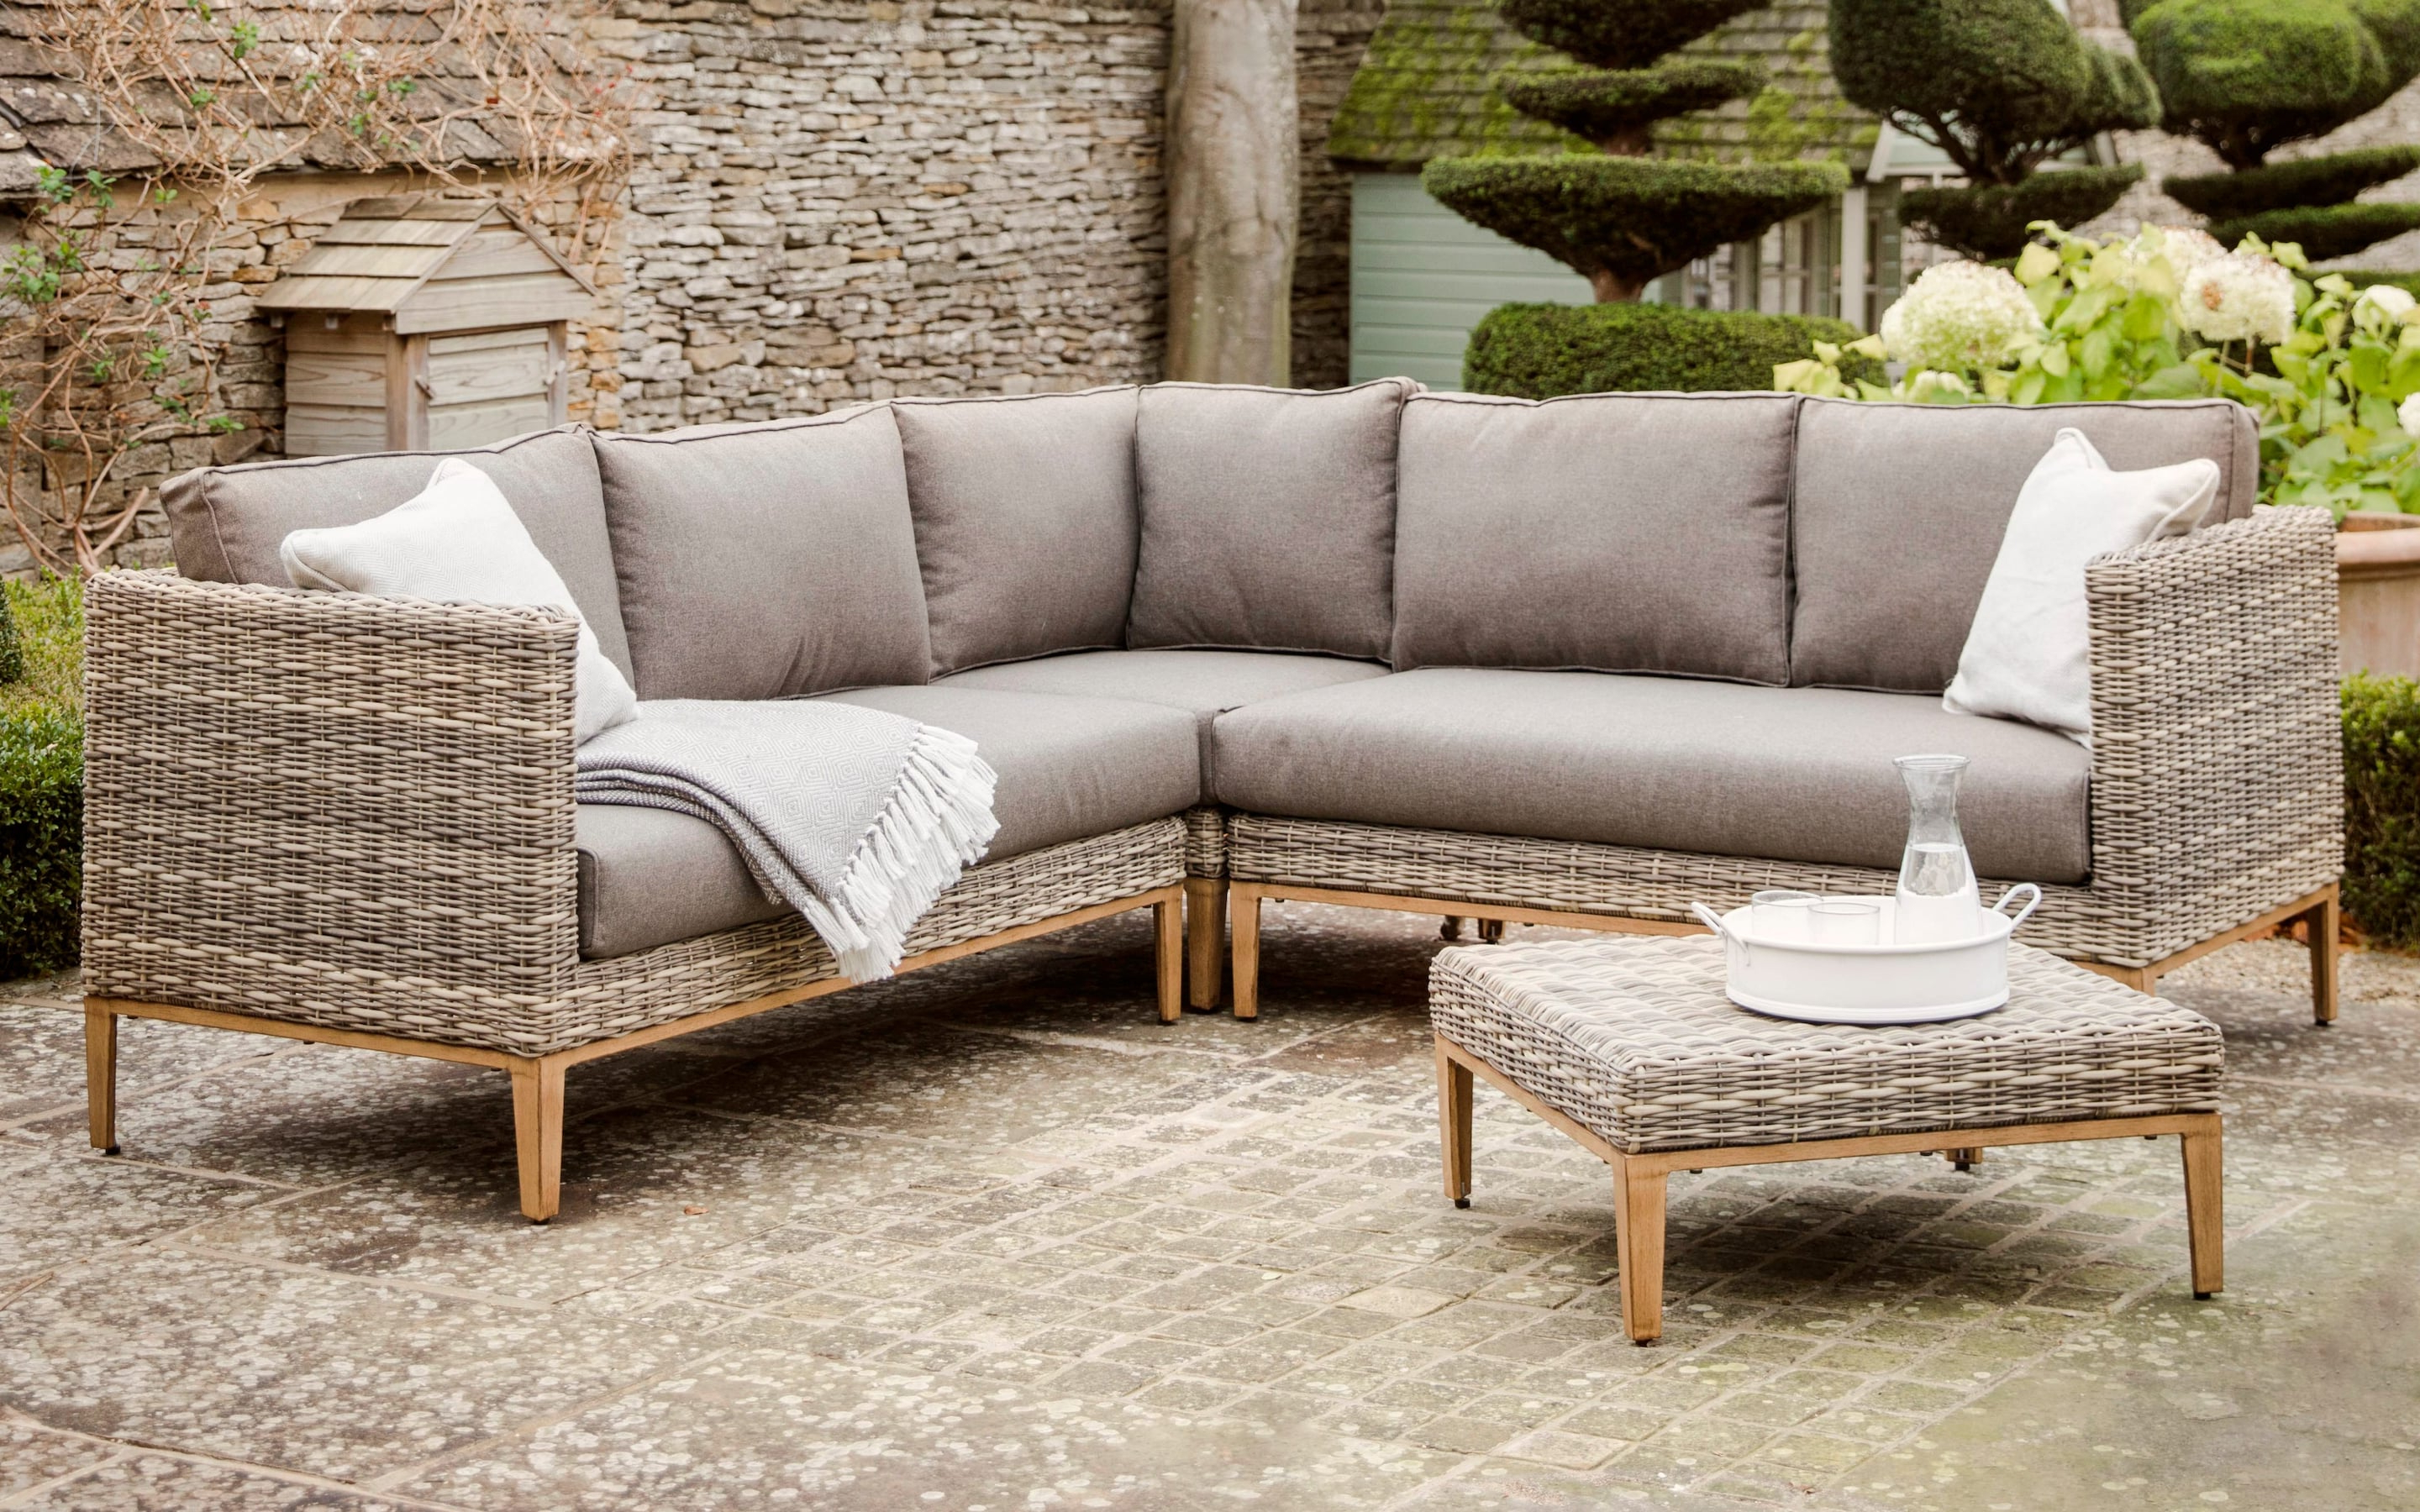 Recent Best Rattan Garden Furniture – And Where To Buy It (View 17 of 20)